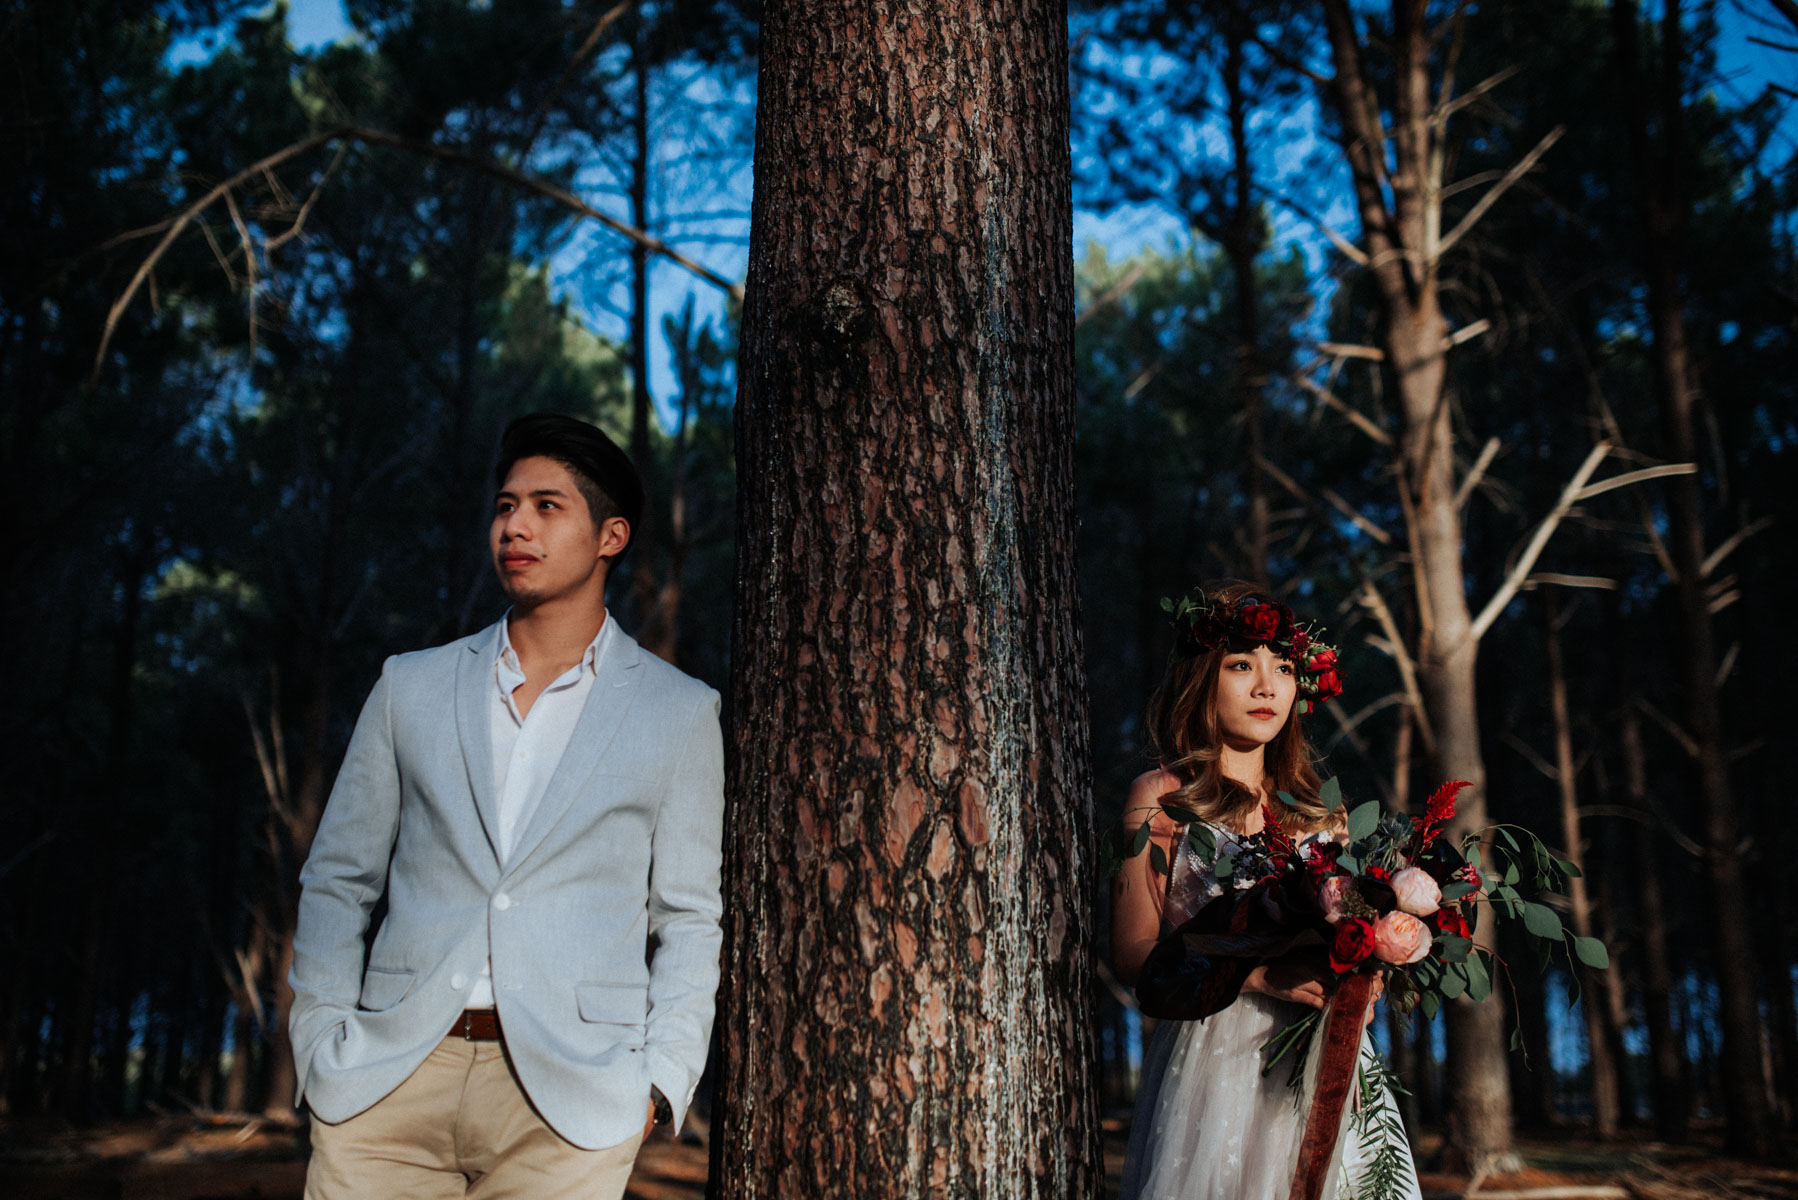 james-julene-forest-elopement-perth-27.JPG